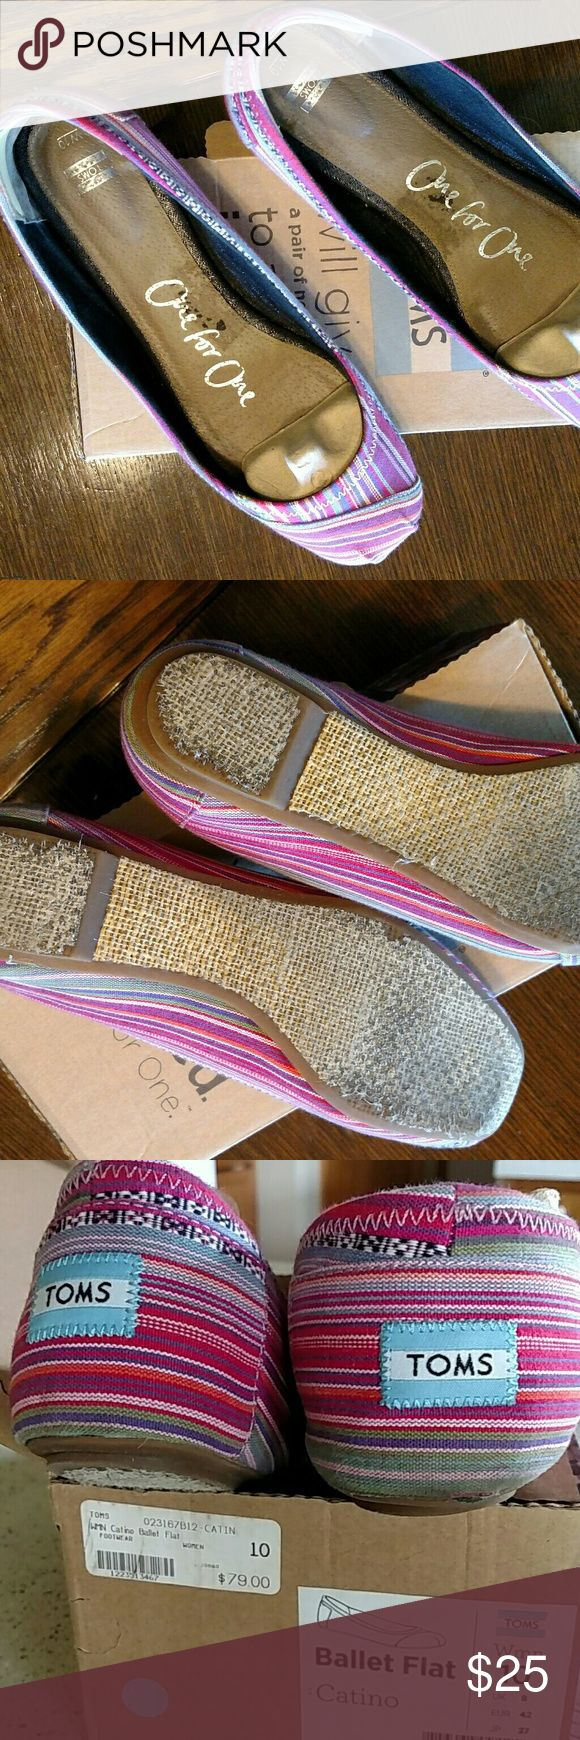 Tom's ballet flat Multi color, gently used Toms Shoes Flats & Loafers